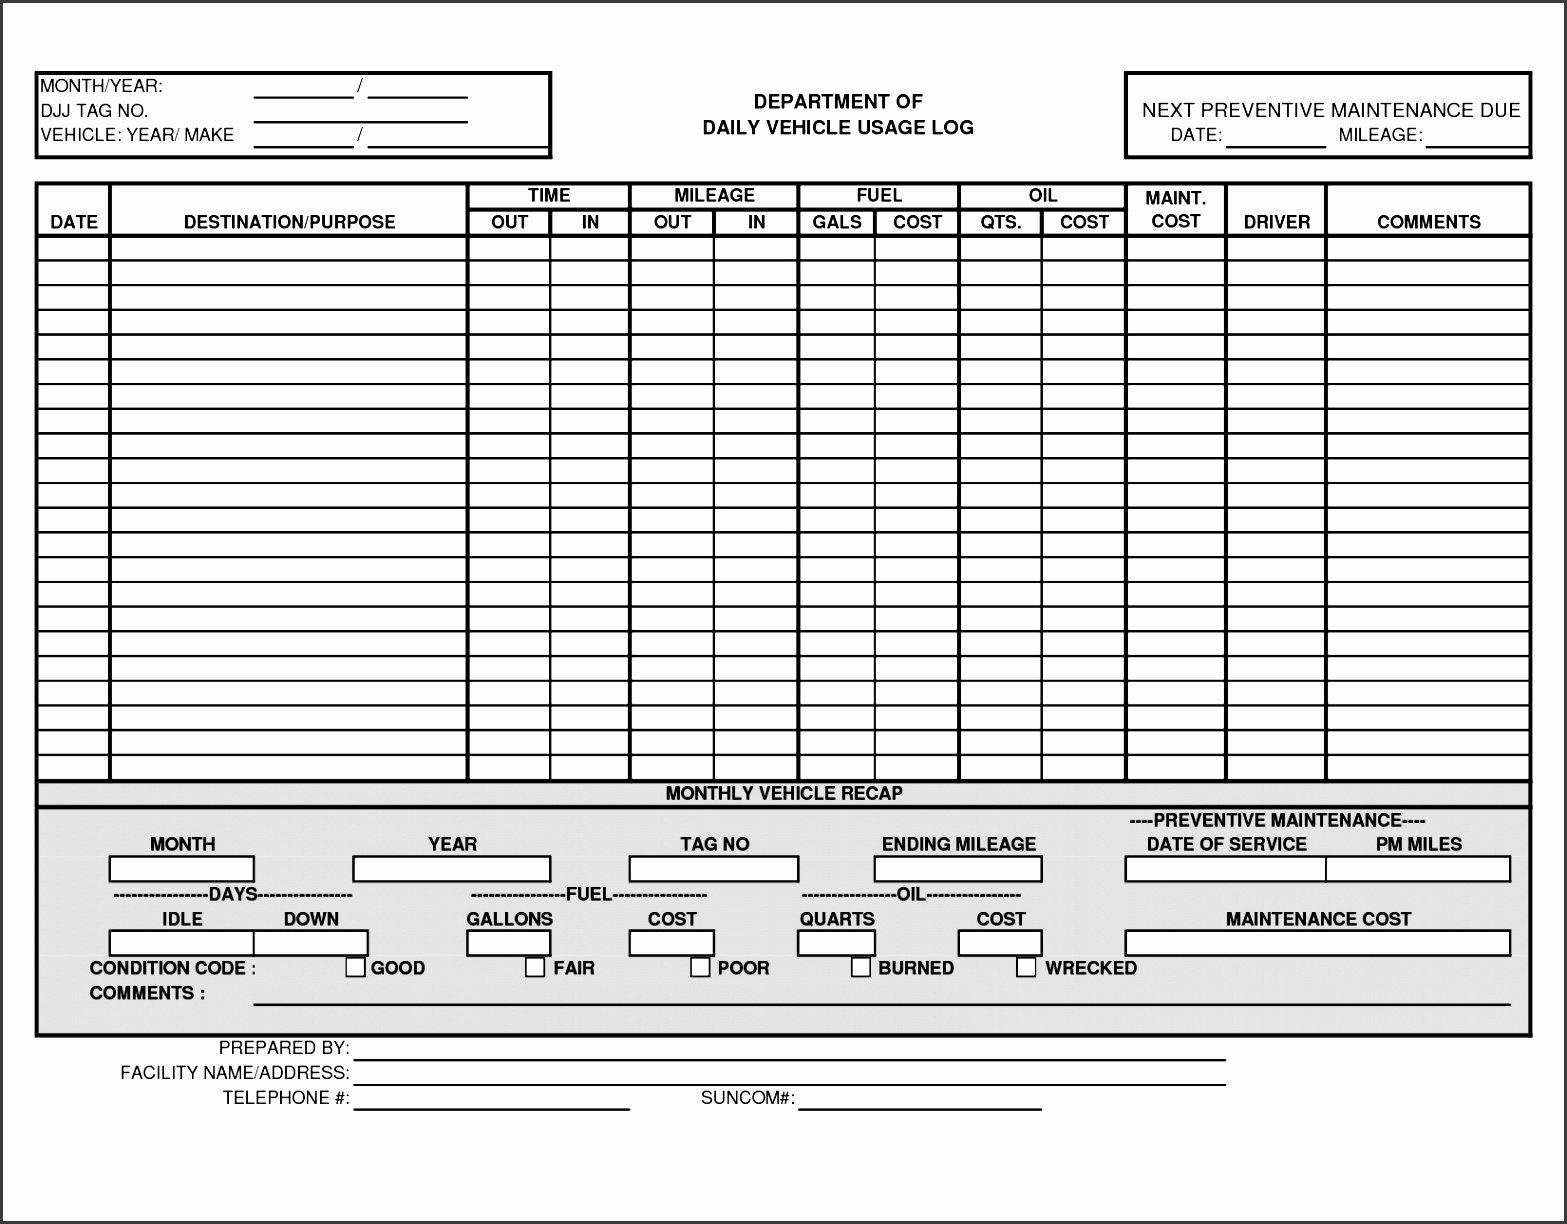 free vehicle expense log template active crossover wiring diagram 6 truck mileage sampletemplatess